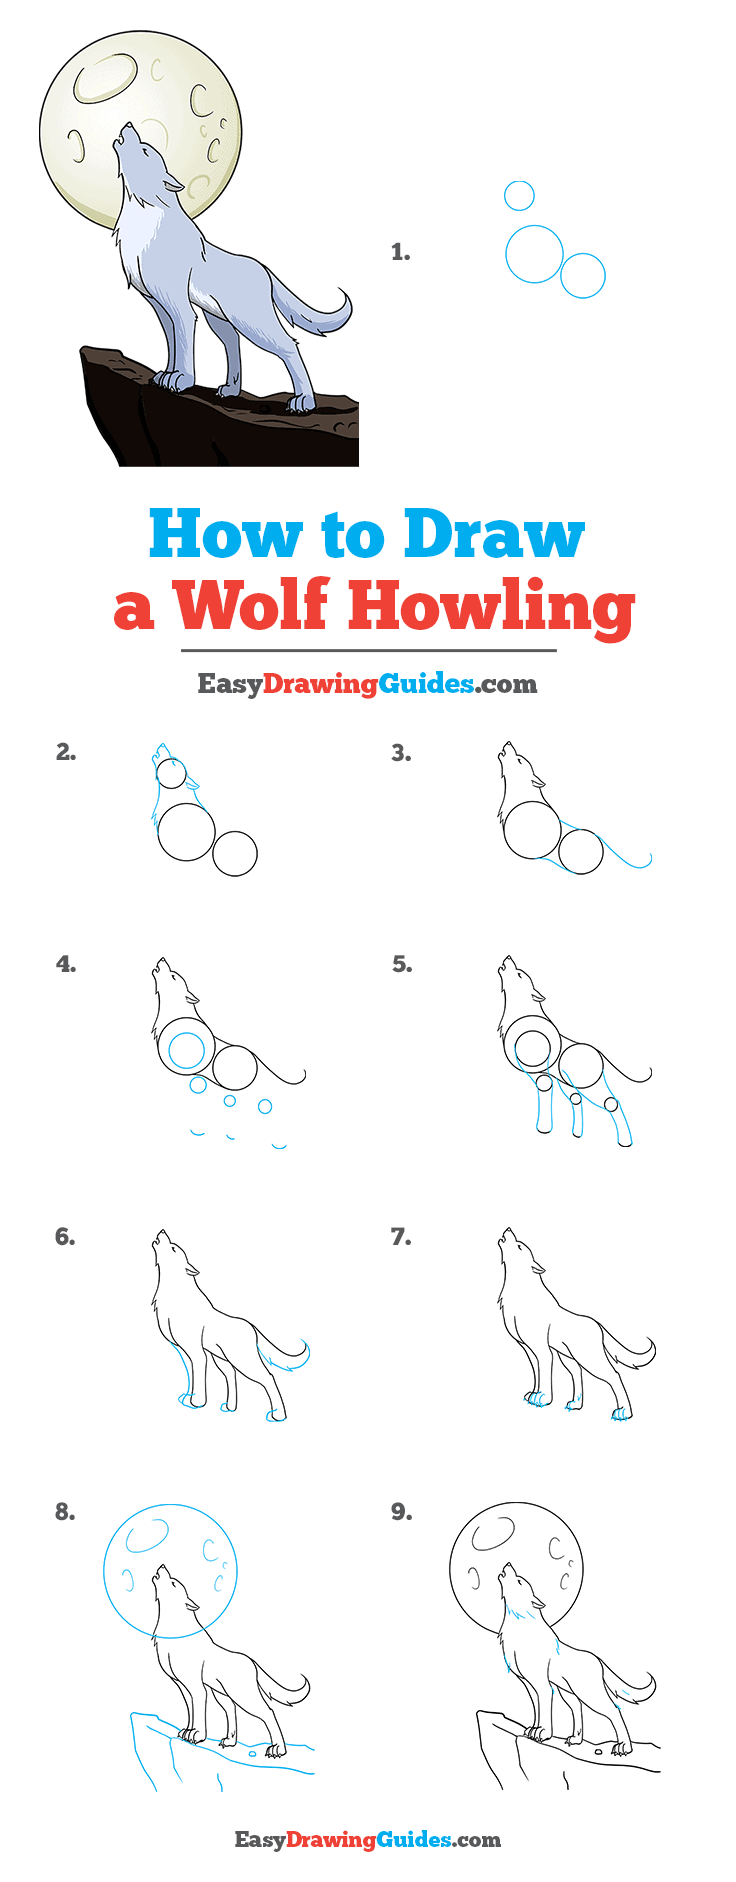 How to Draw a Wolf Howling Pinterest Image